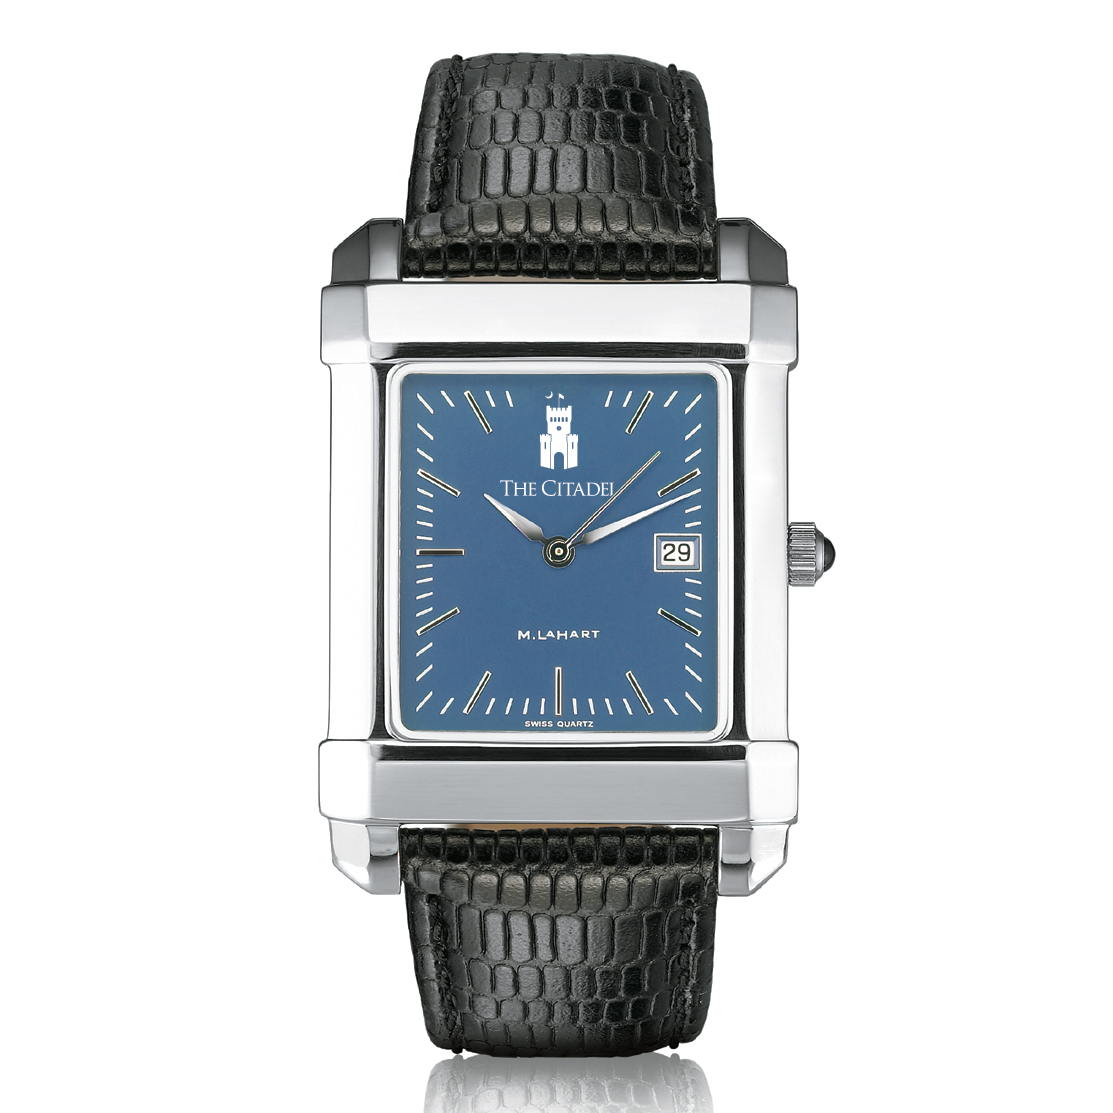 Citadel Men's Blue Quad Watch with Leather Strap - Image 2